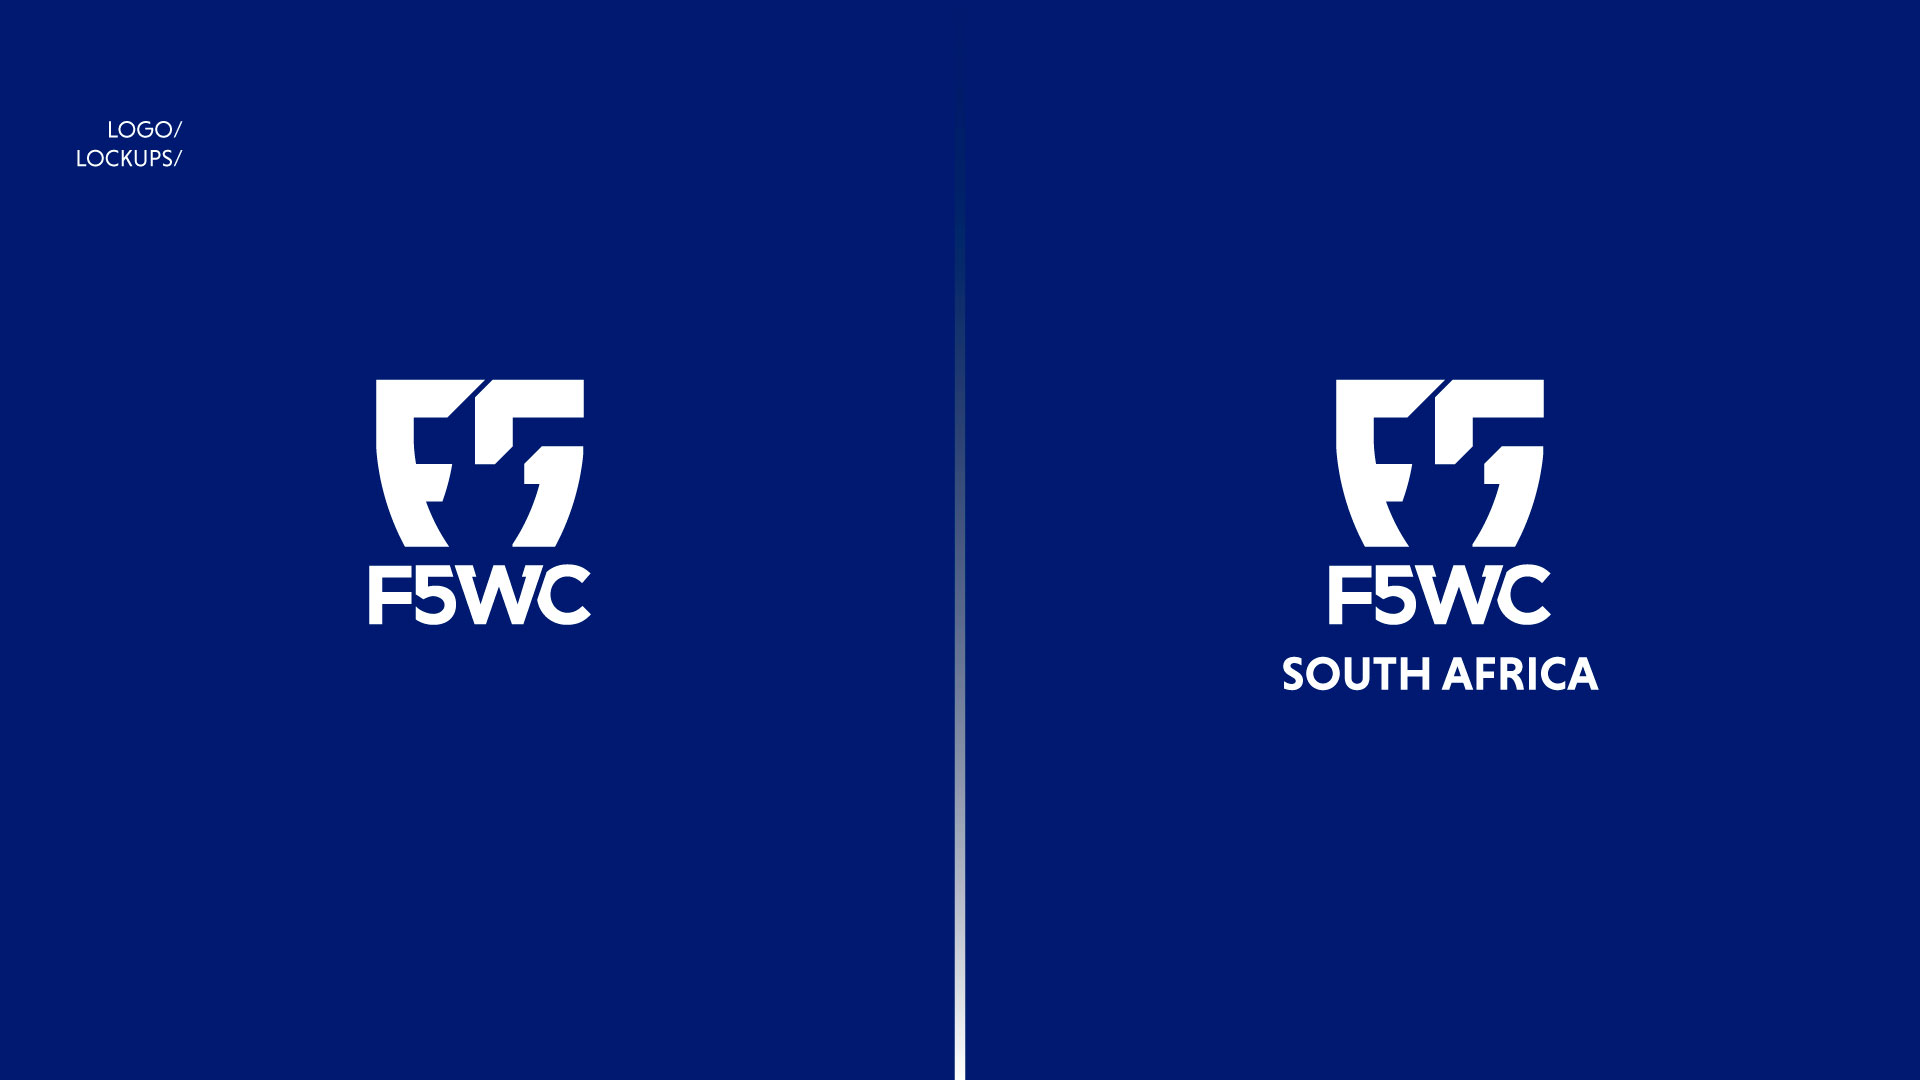 F5WC Logo Lockups